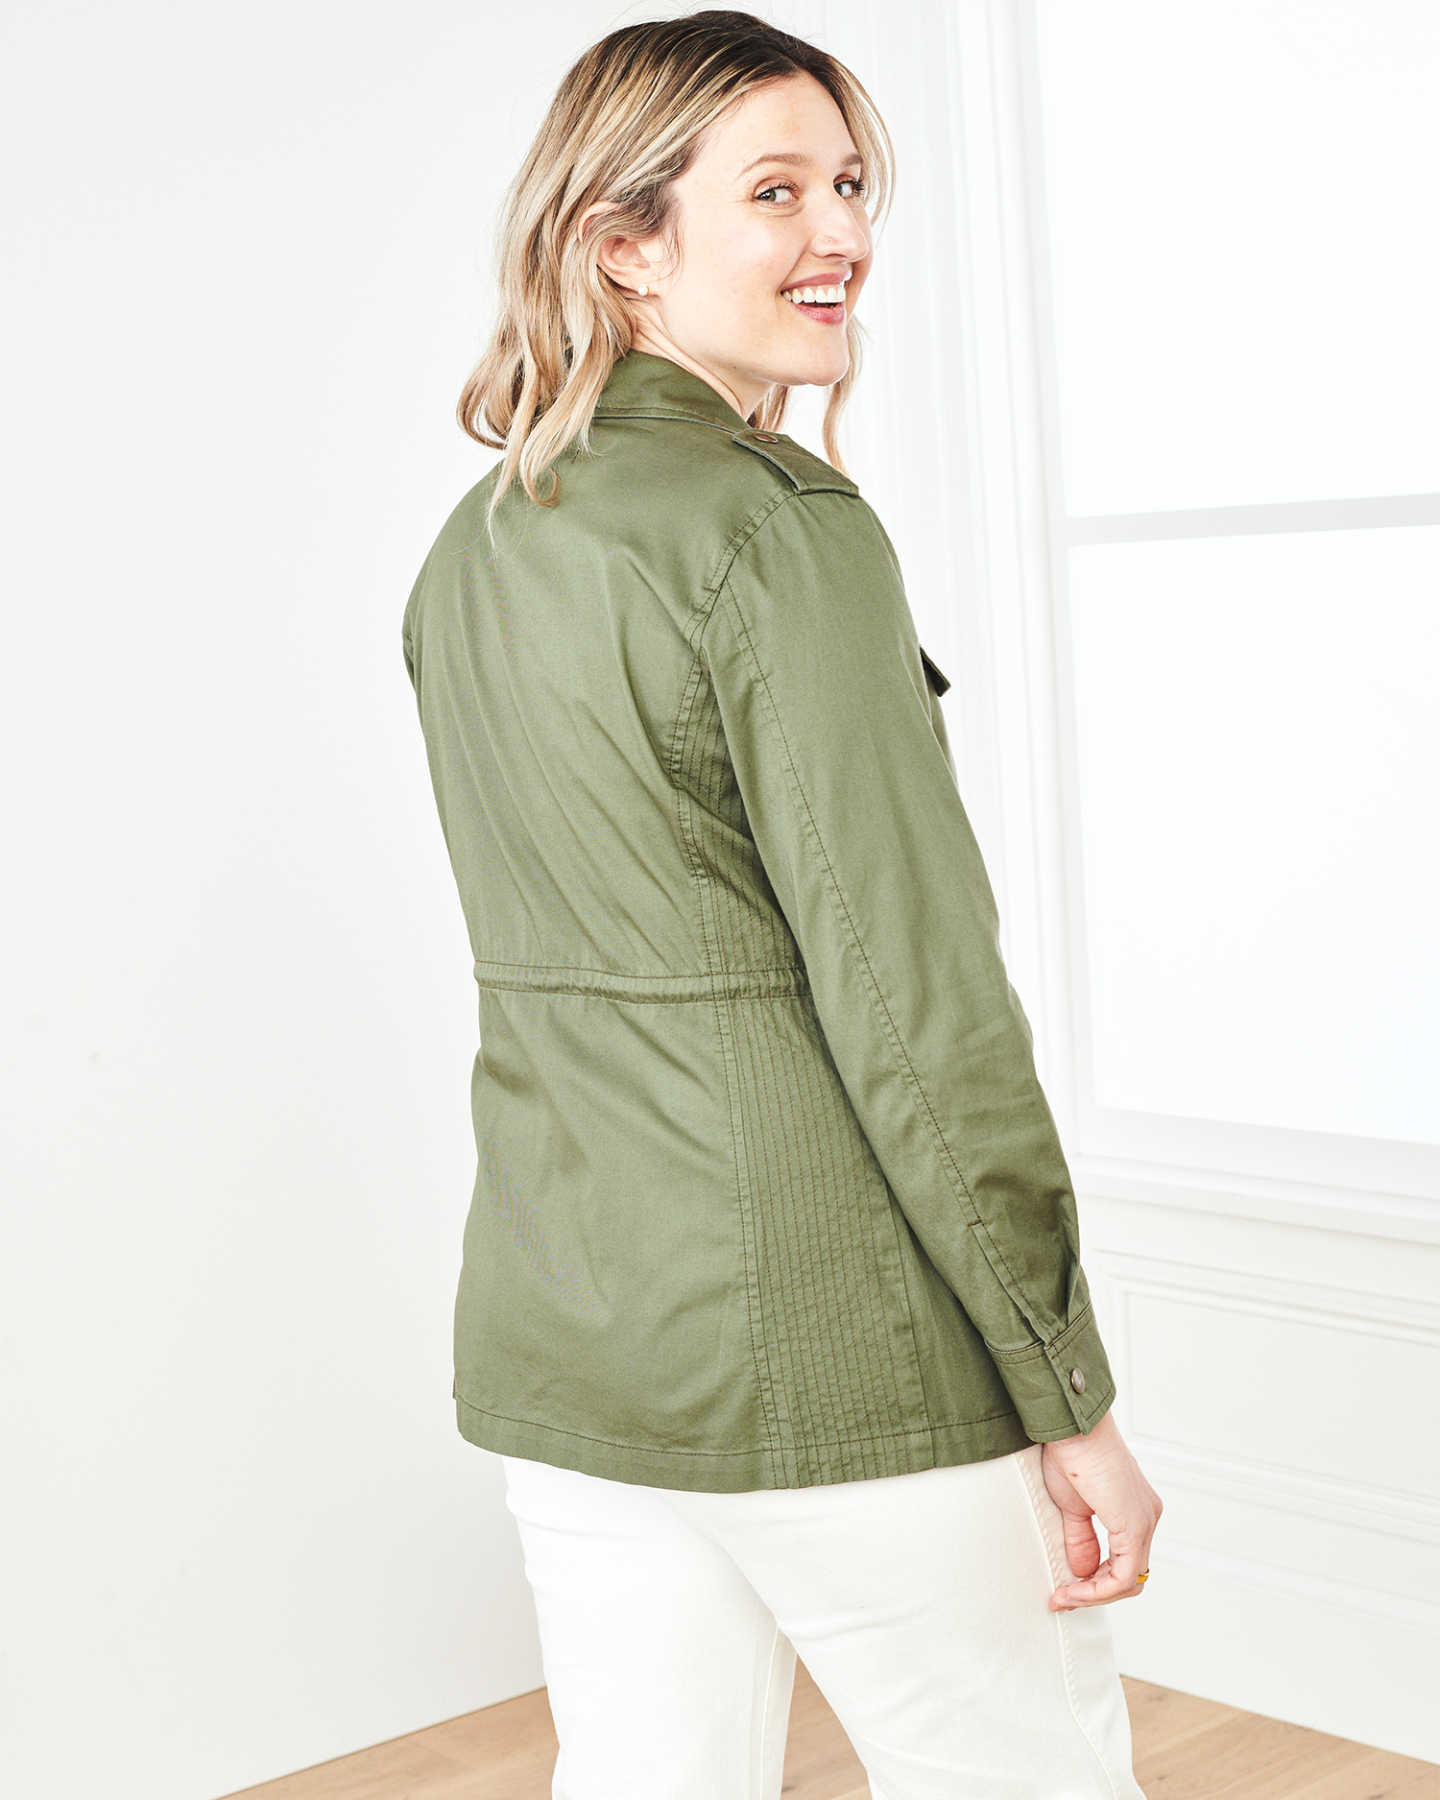 Cotton Twill Utility Jacket - Olive - 8